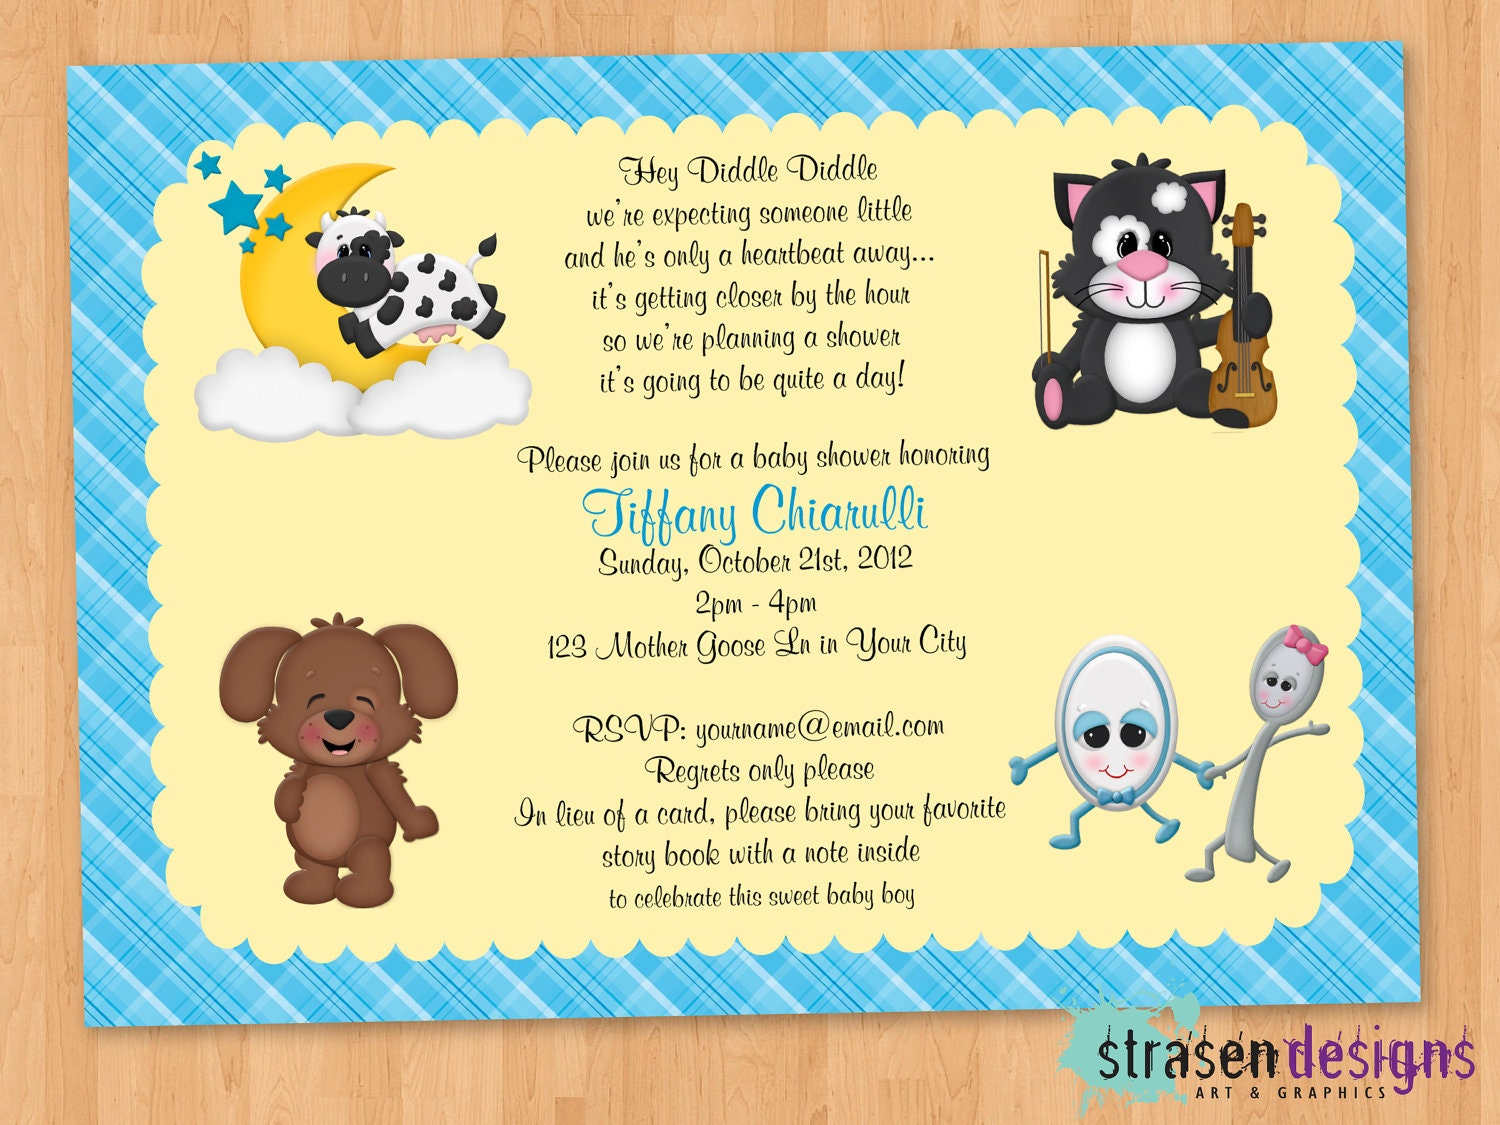 Nursery Rhyme Hey Diddle Diddle Baby Shower by StrasenDesigns: https://www.etsy.com/listing/109346262/nursery-rhyme-hey-diddle...